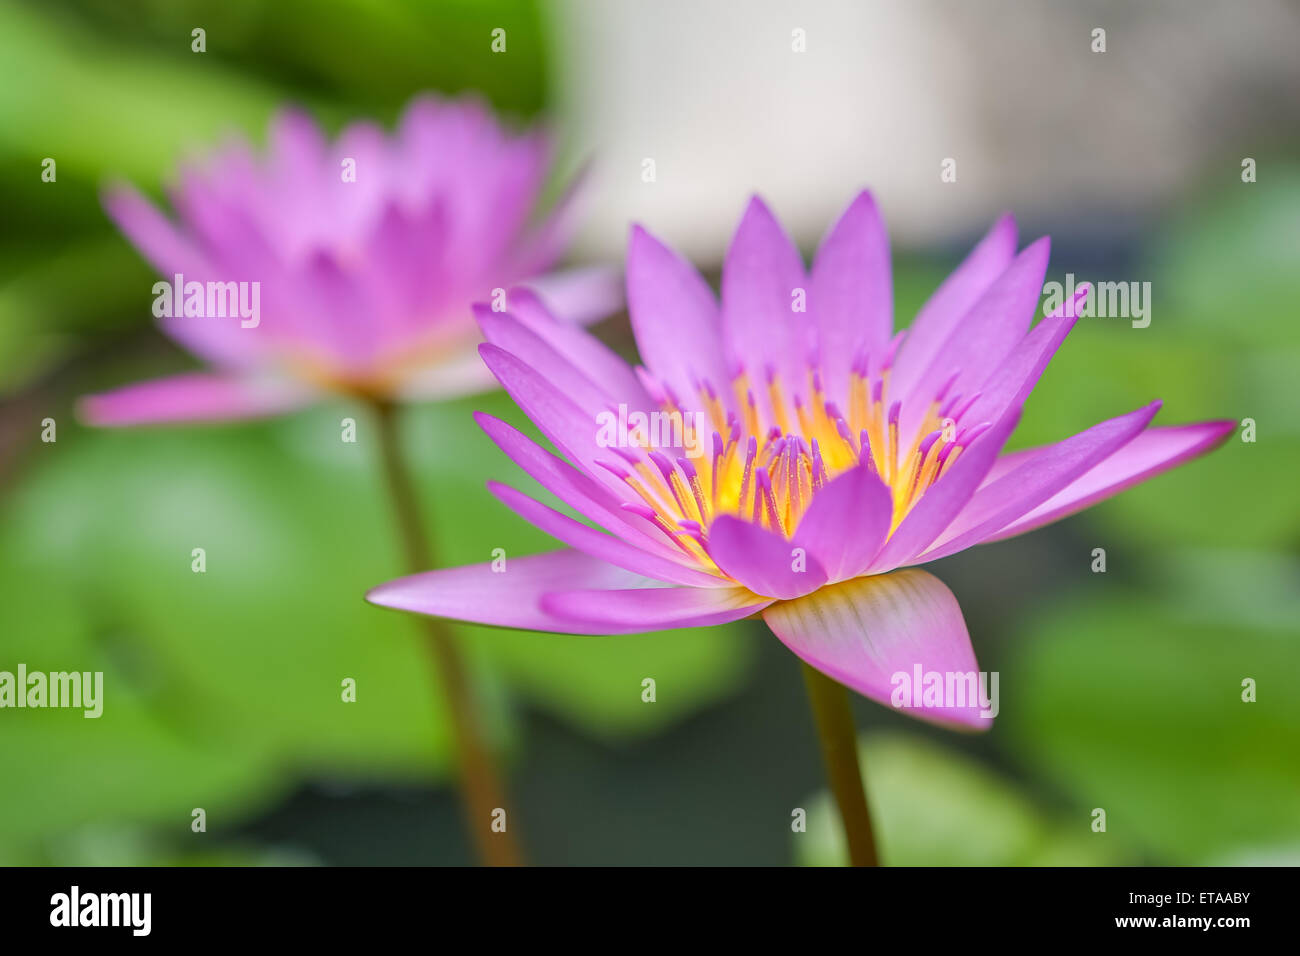 Close Up Asian Lotus Flower In Water Stock Photo 83820911 Alamy